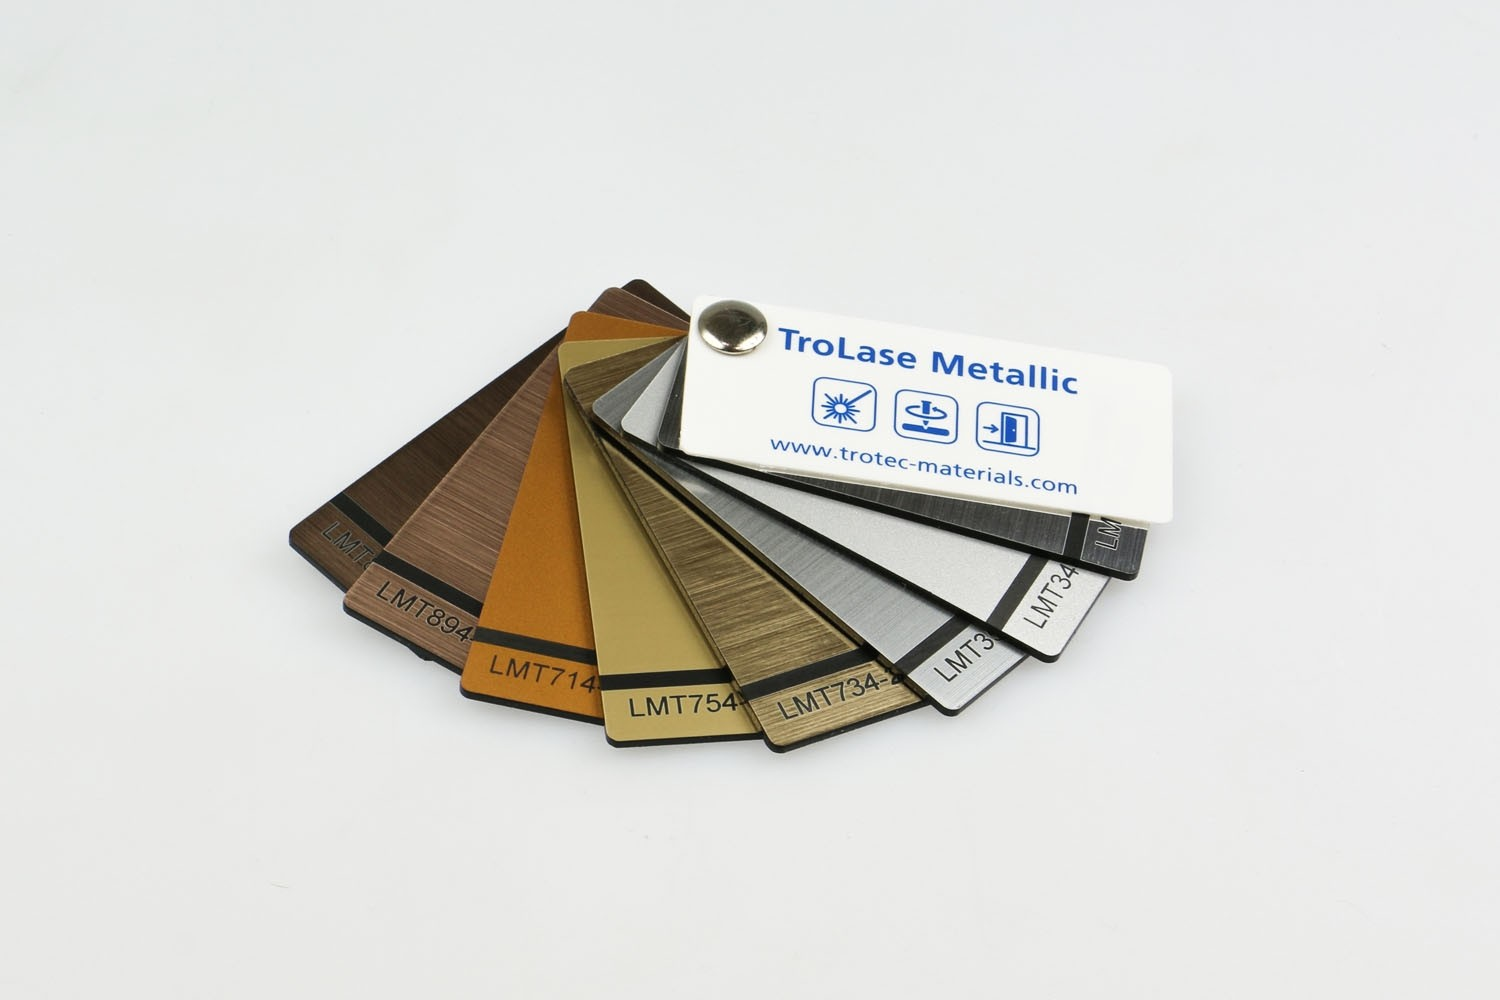 Color Fan TroLase Metallic